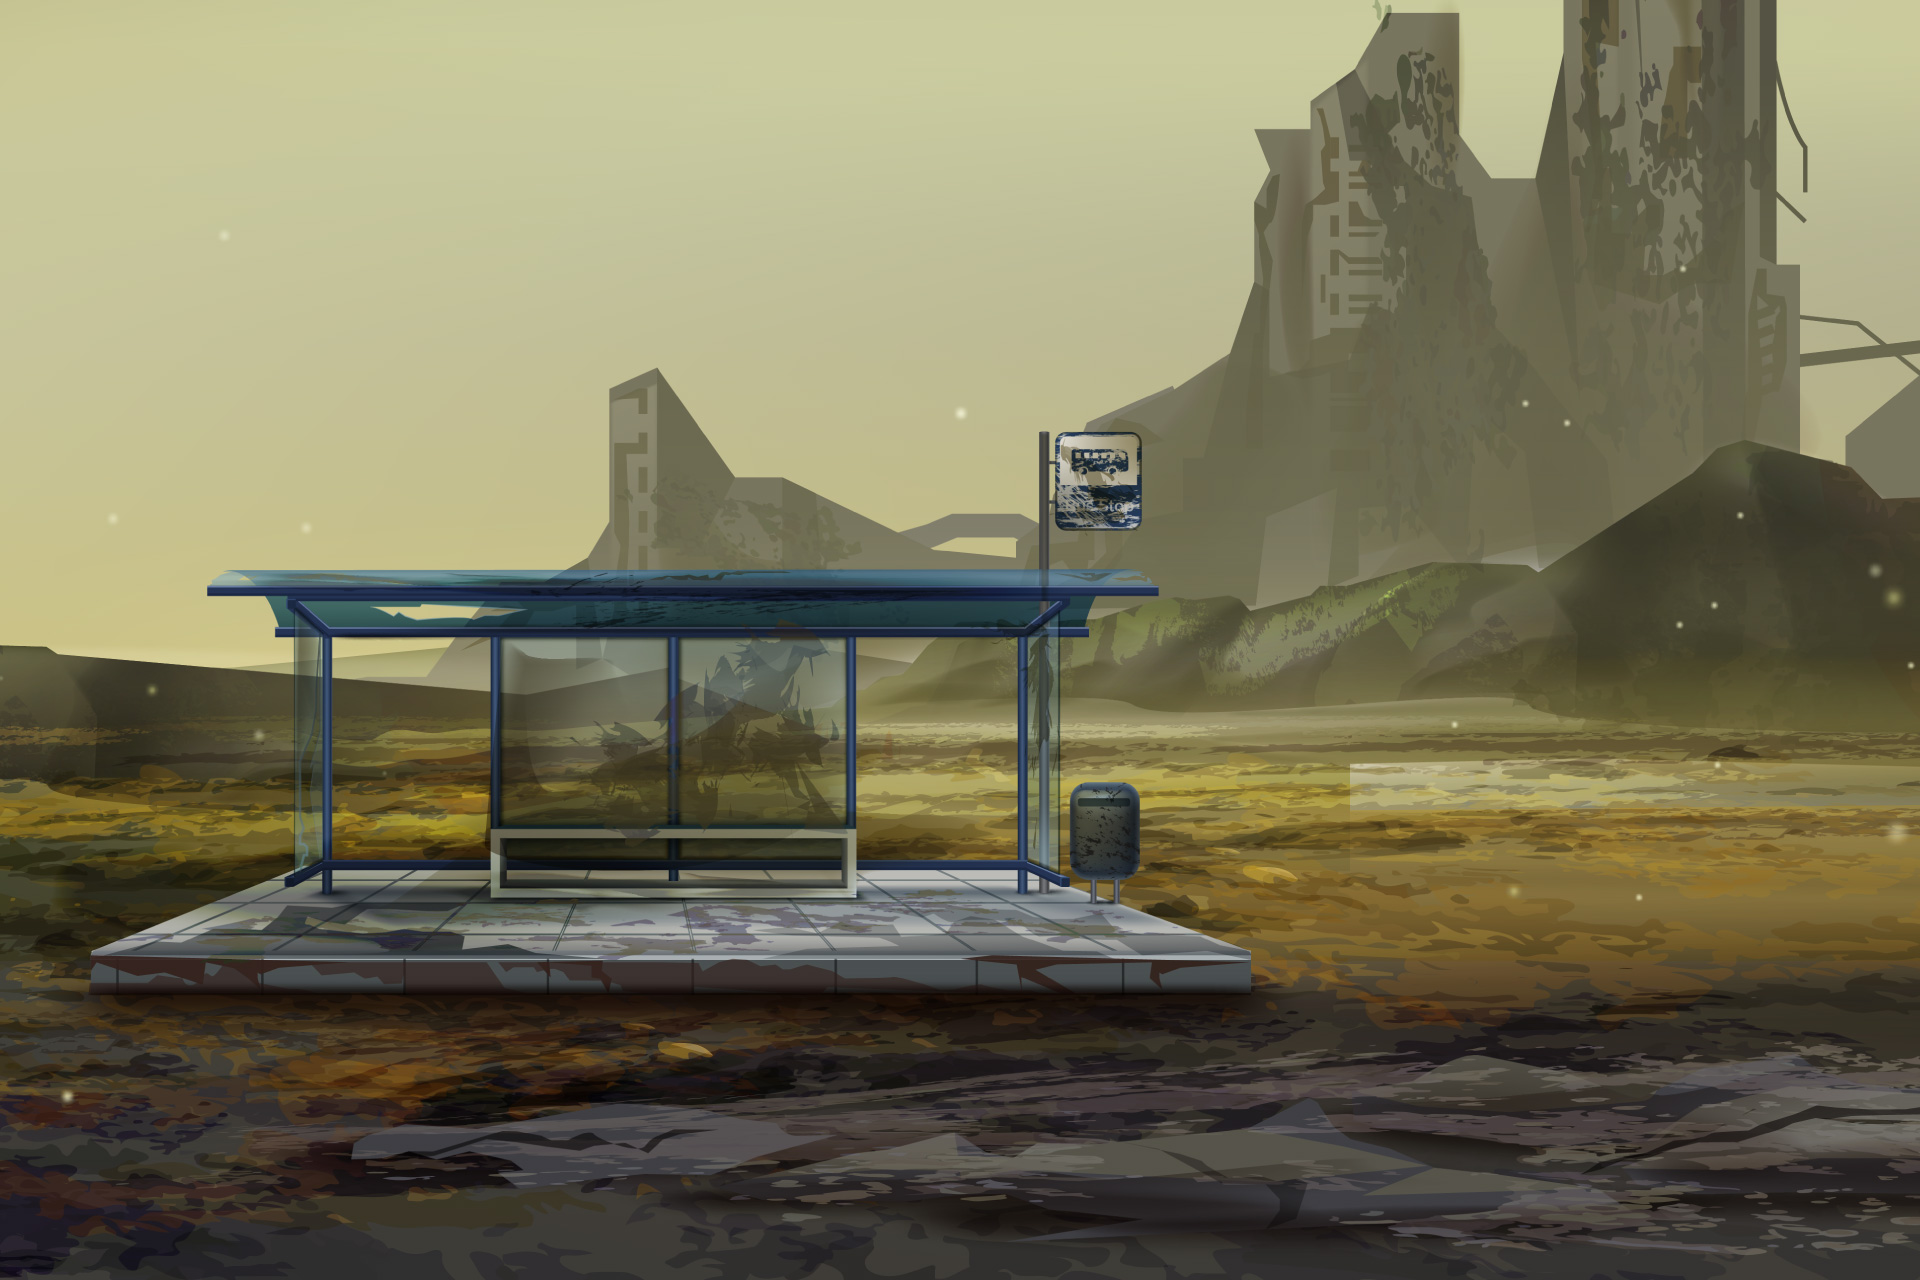 Illustration of a ruined city with a bus stop and broken buildings